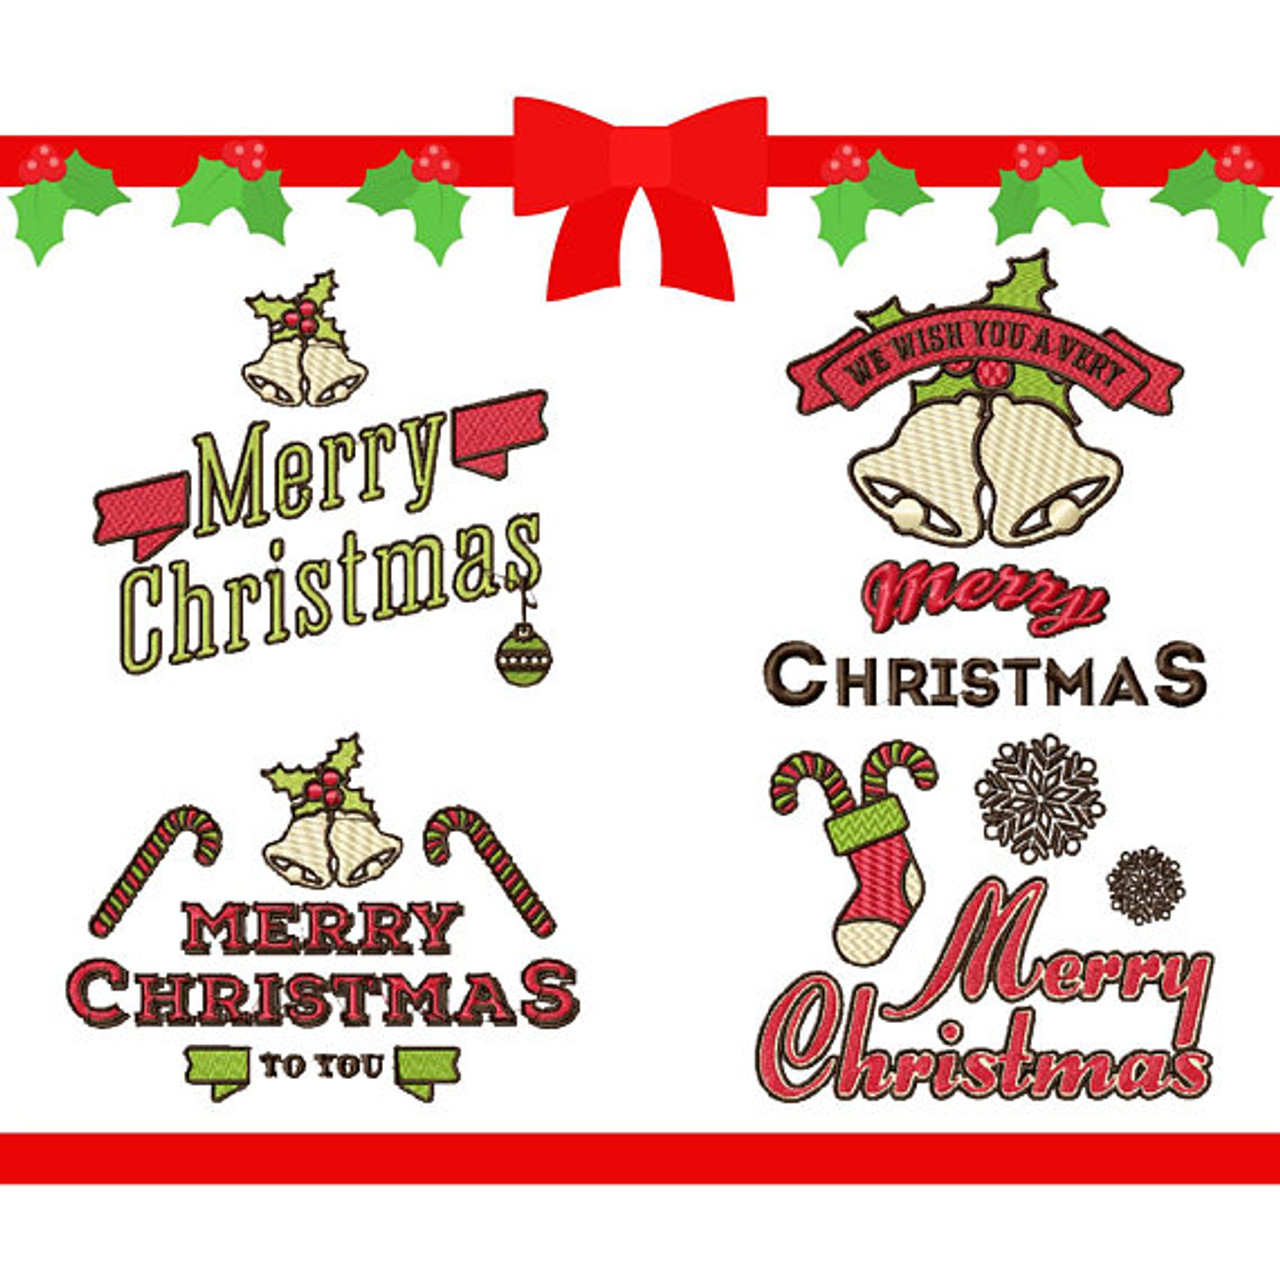 Merry Christmas Labels.Christmas Labels Collection Of 4 Machine Embroidery Designs